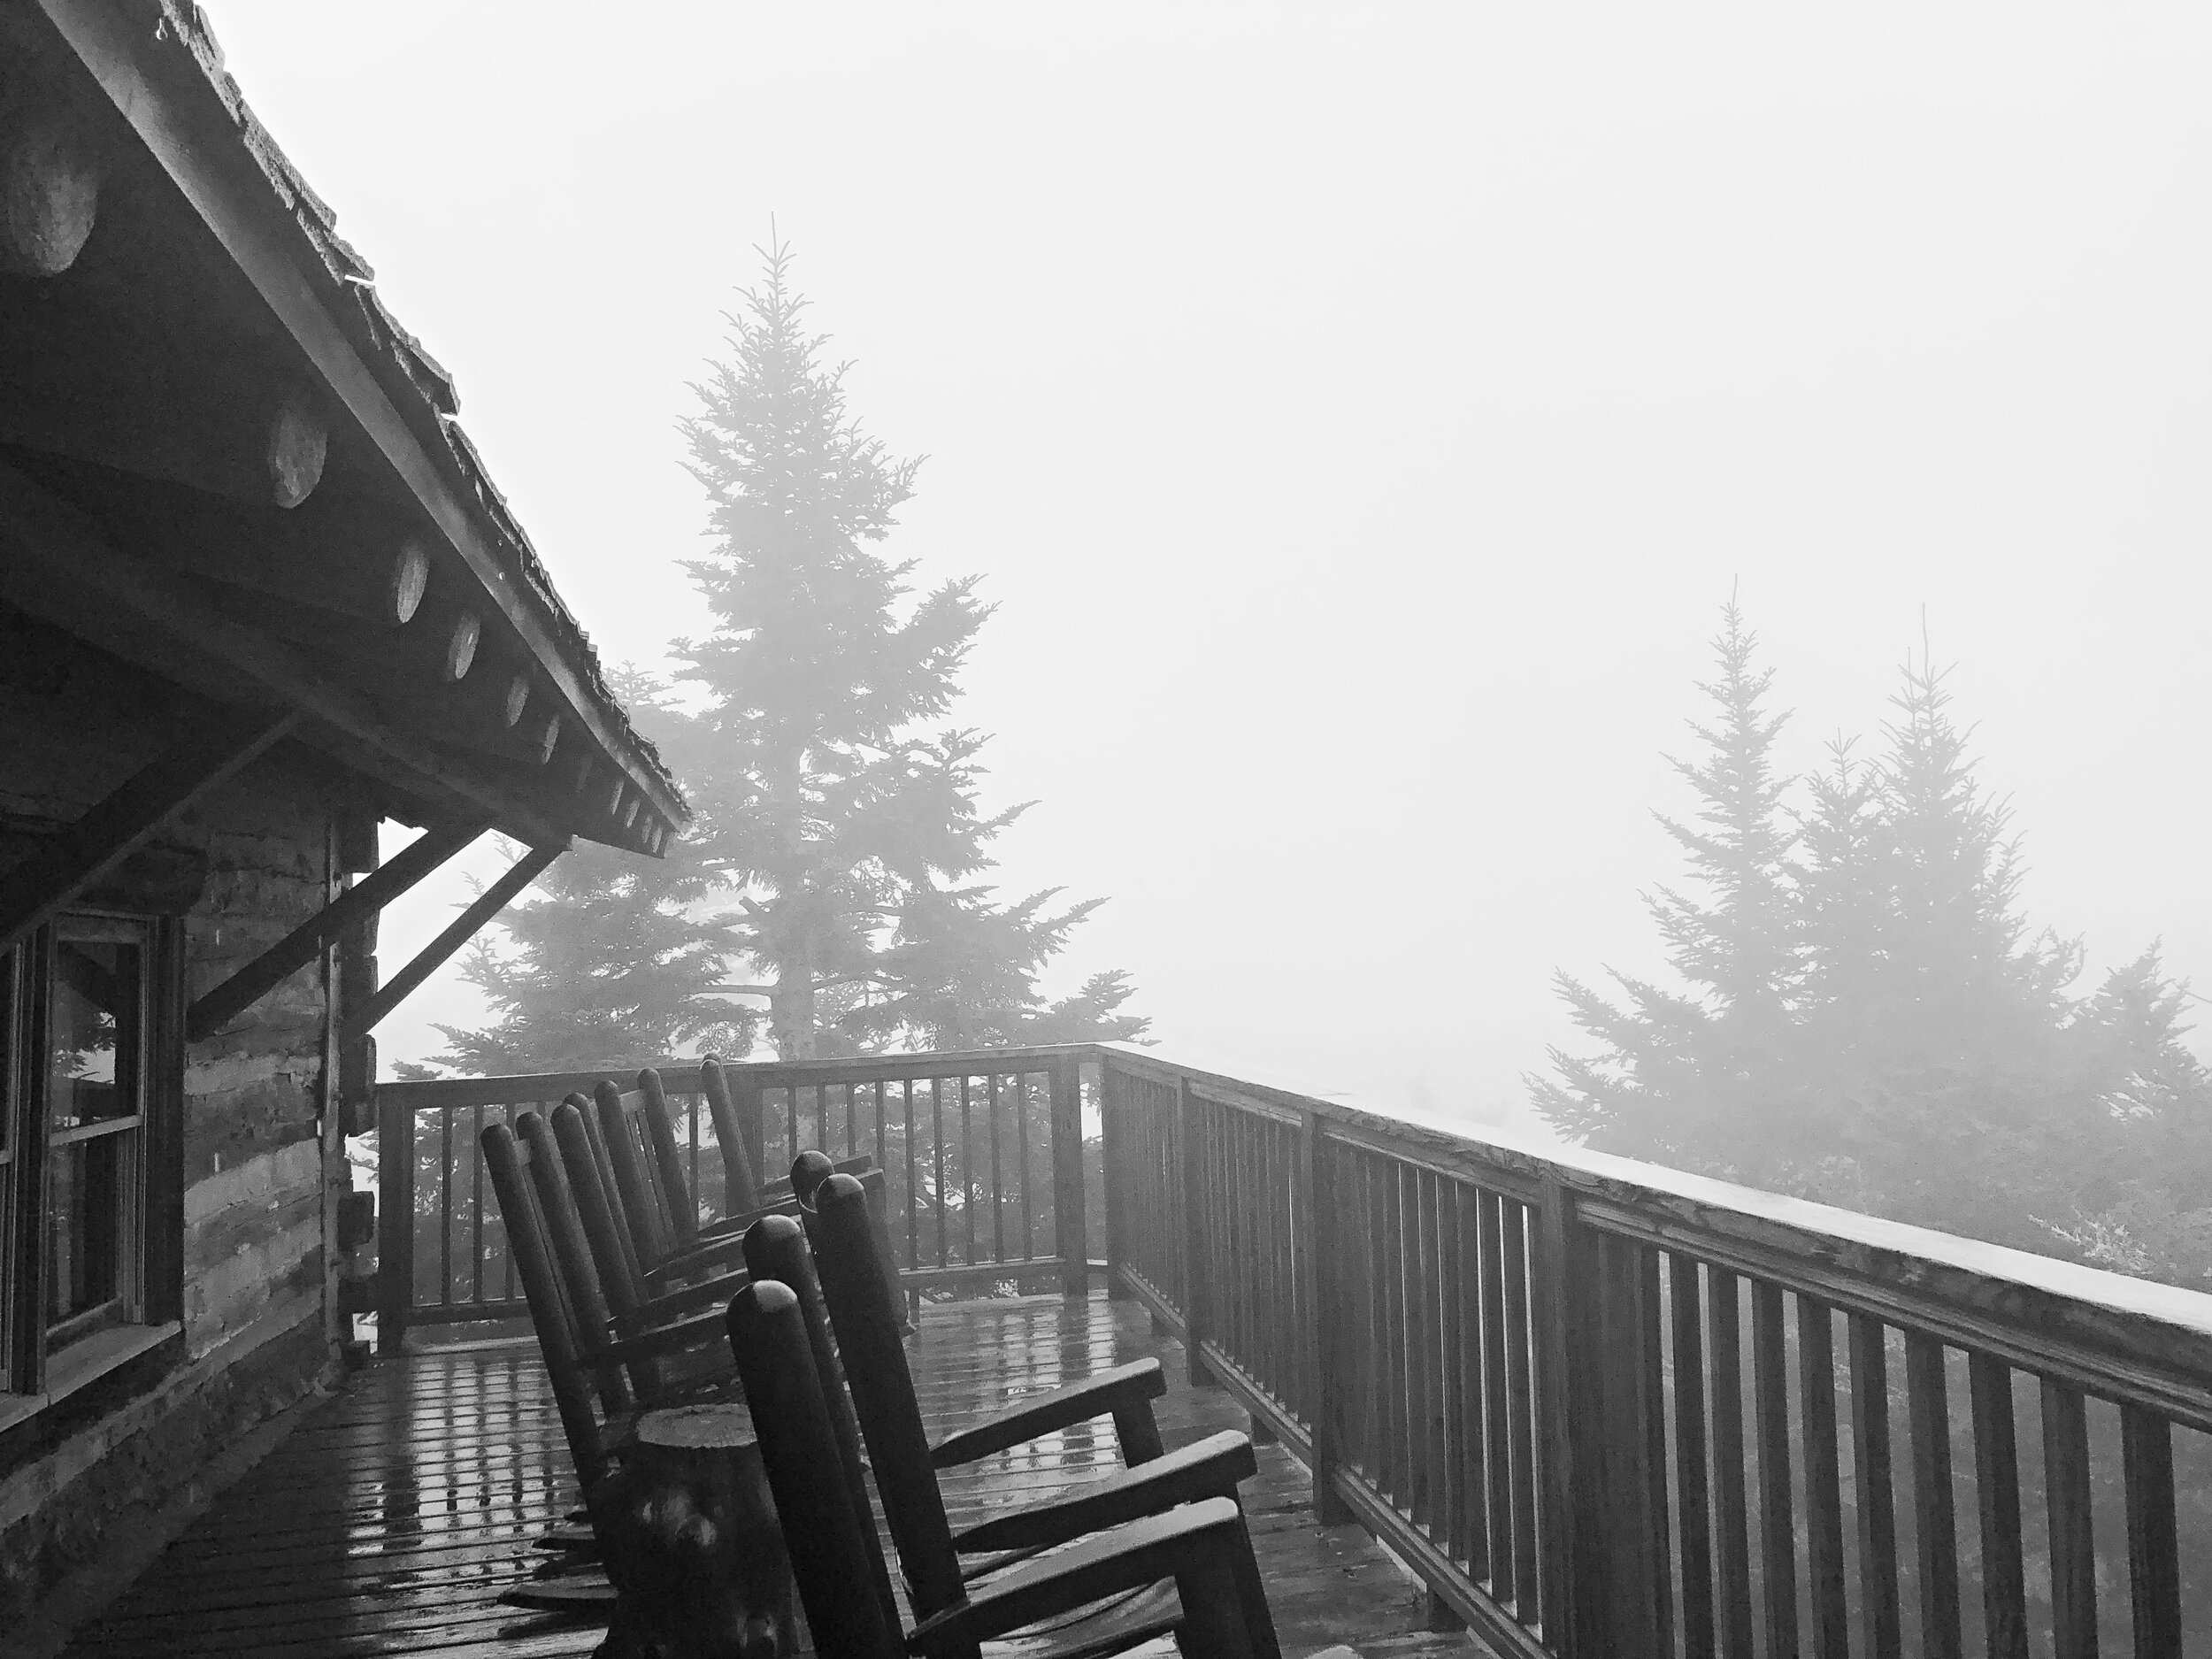 mount-leconte-lodge-great-smoky-mountains-gatlinberg-tennessee0465.JPG